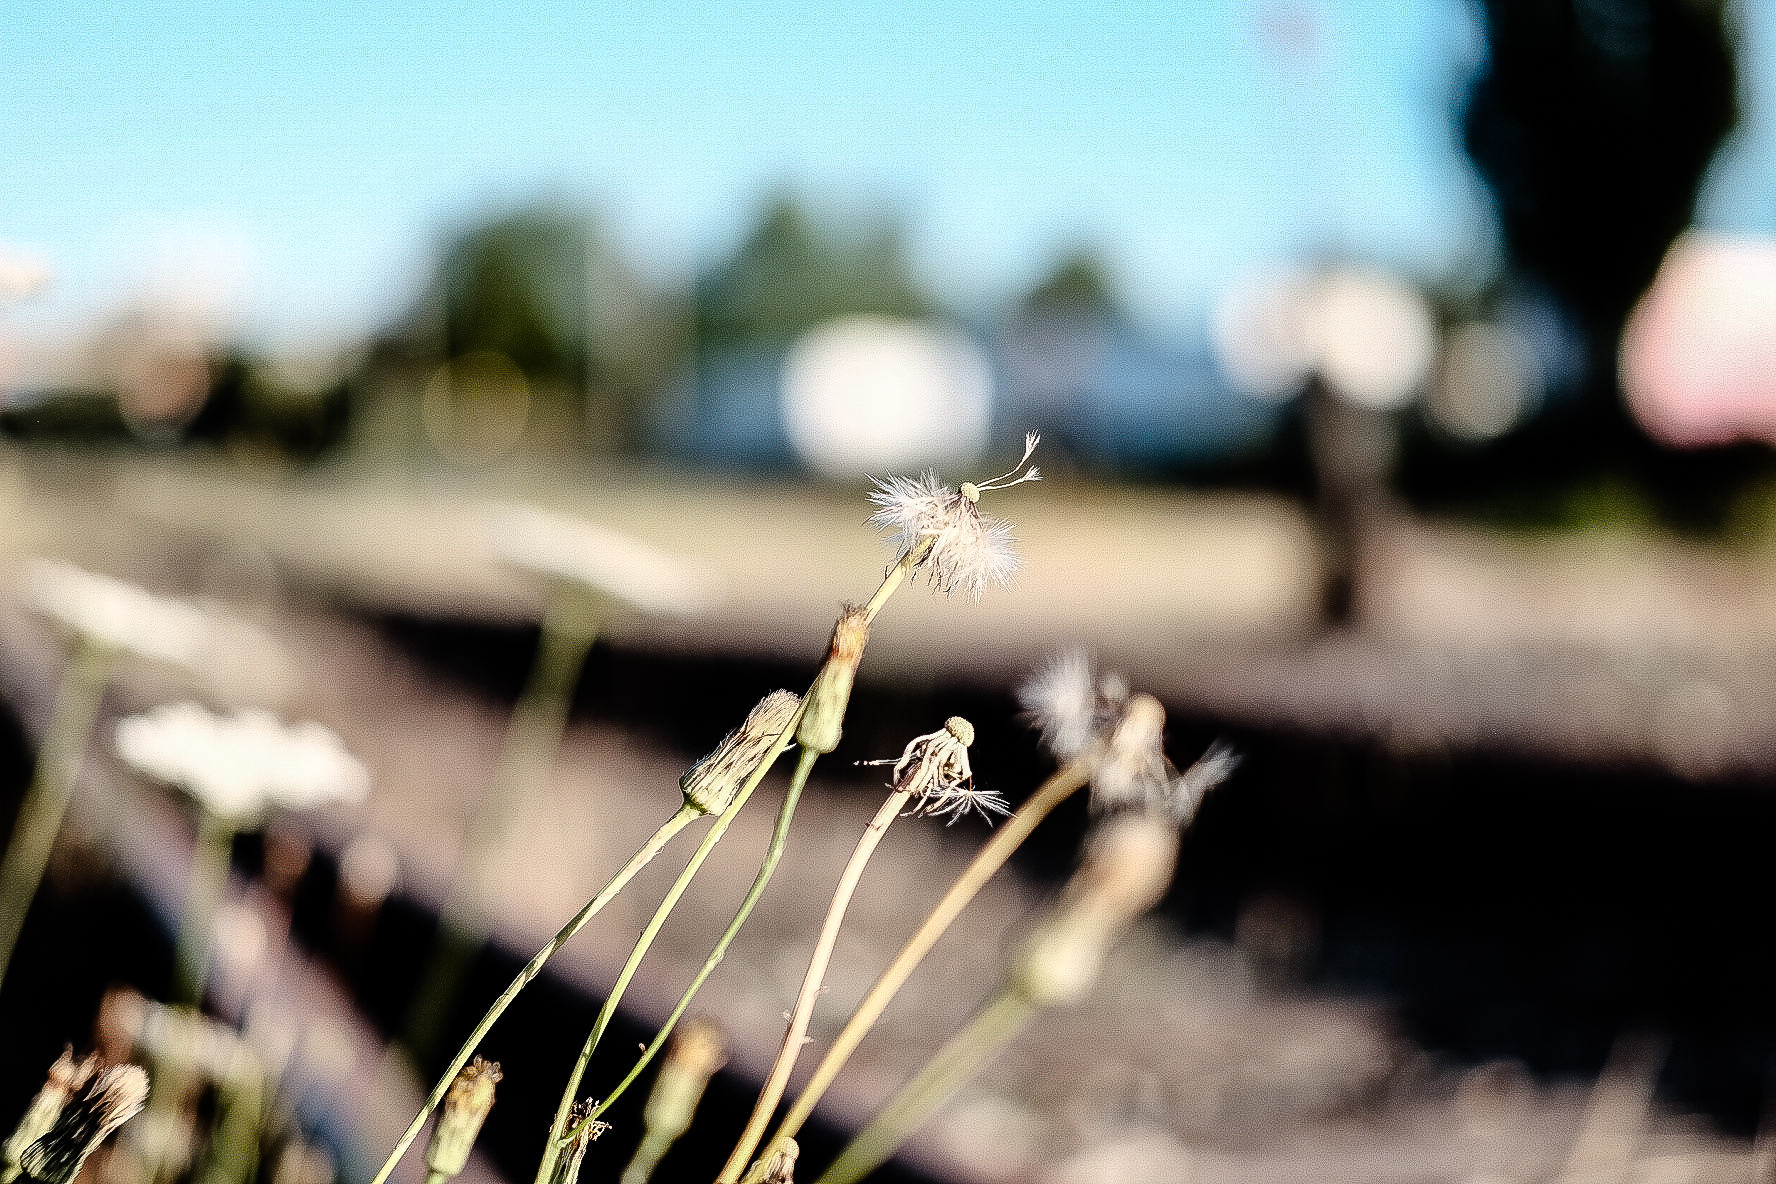 train tracks, weeds, New Westminster, BC, Canada, quay, riverside